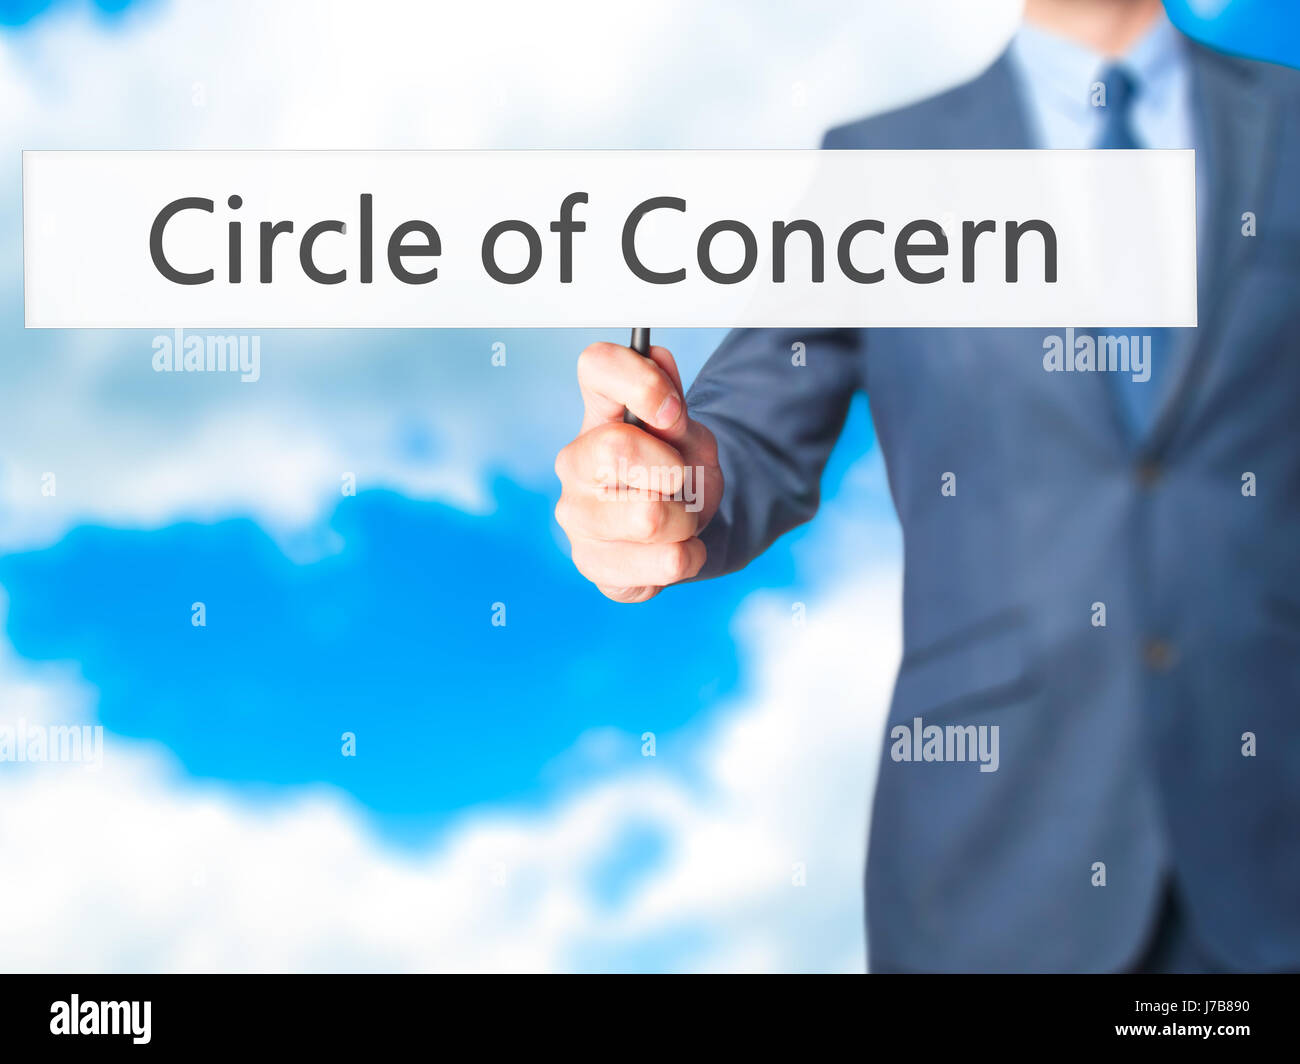 Circle of Concern - Businessman hand holding sign. Business, technology, internet concept. Stock Photo - Stock Image